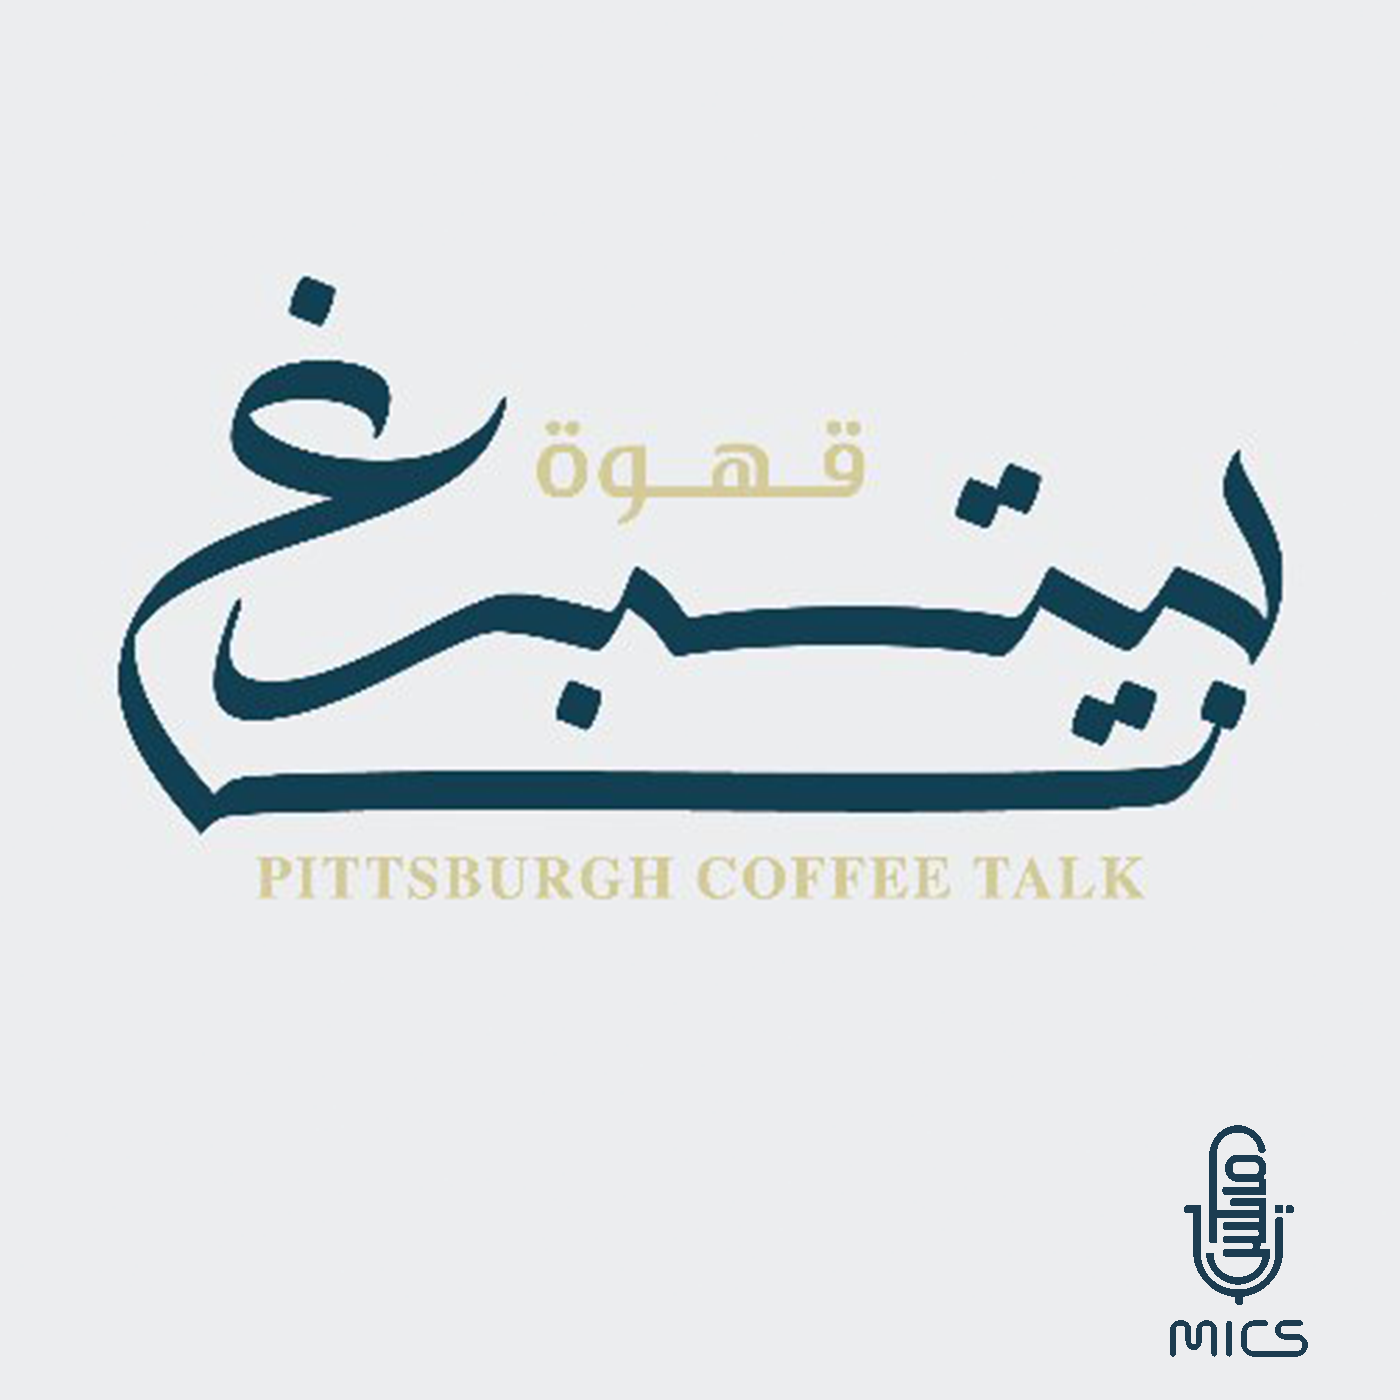 Pittsburgh Coffee | قهوة بيتسبرغ